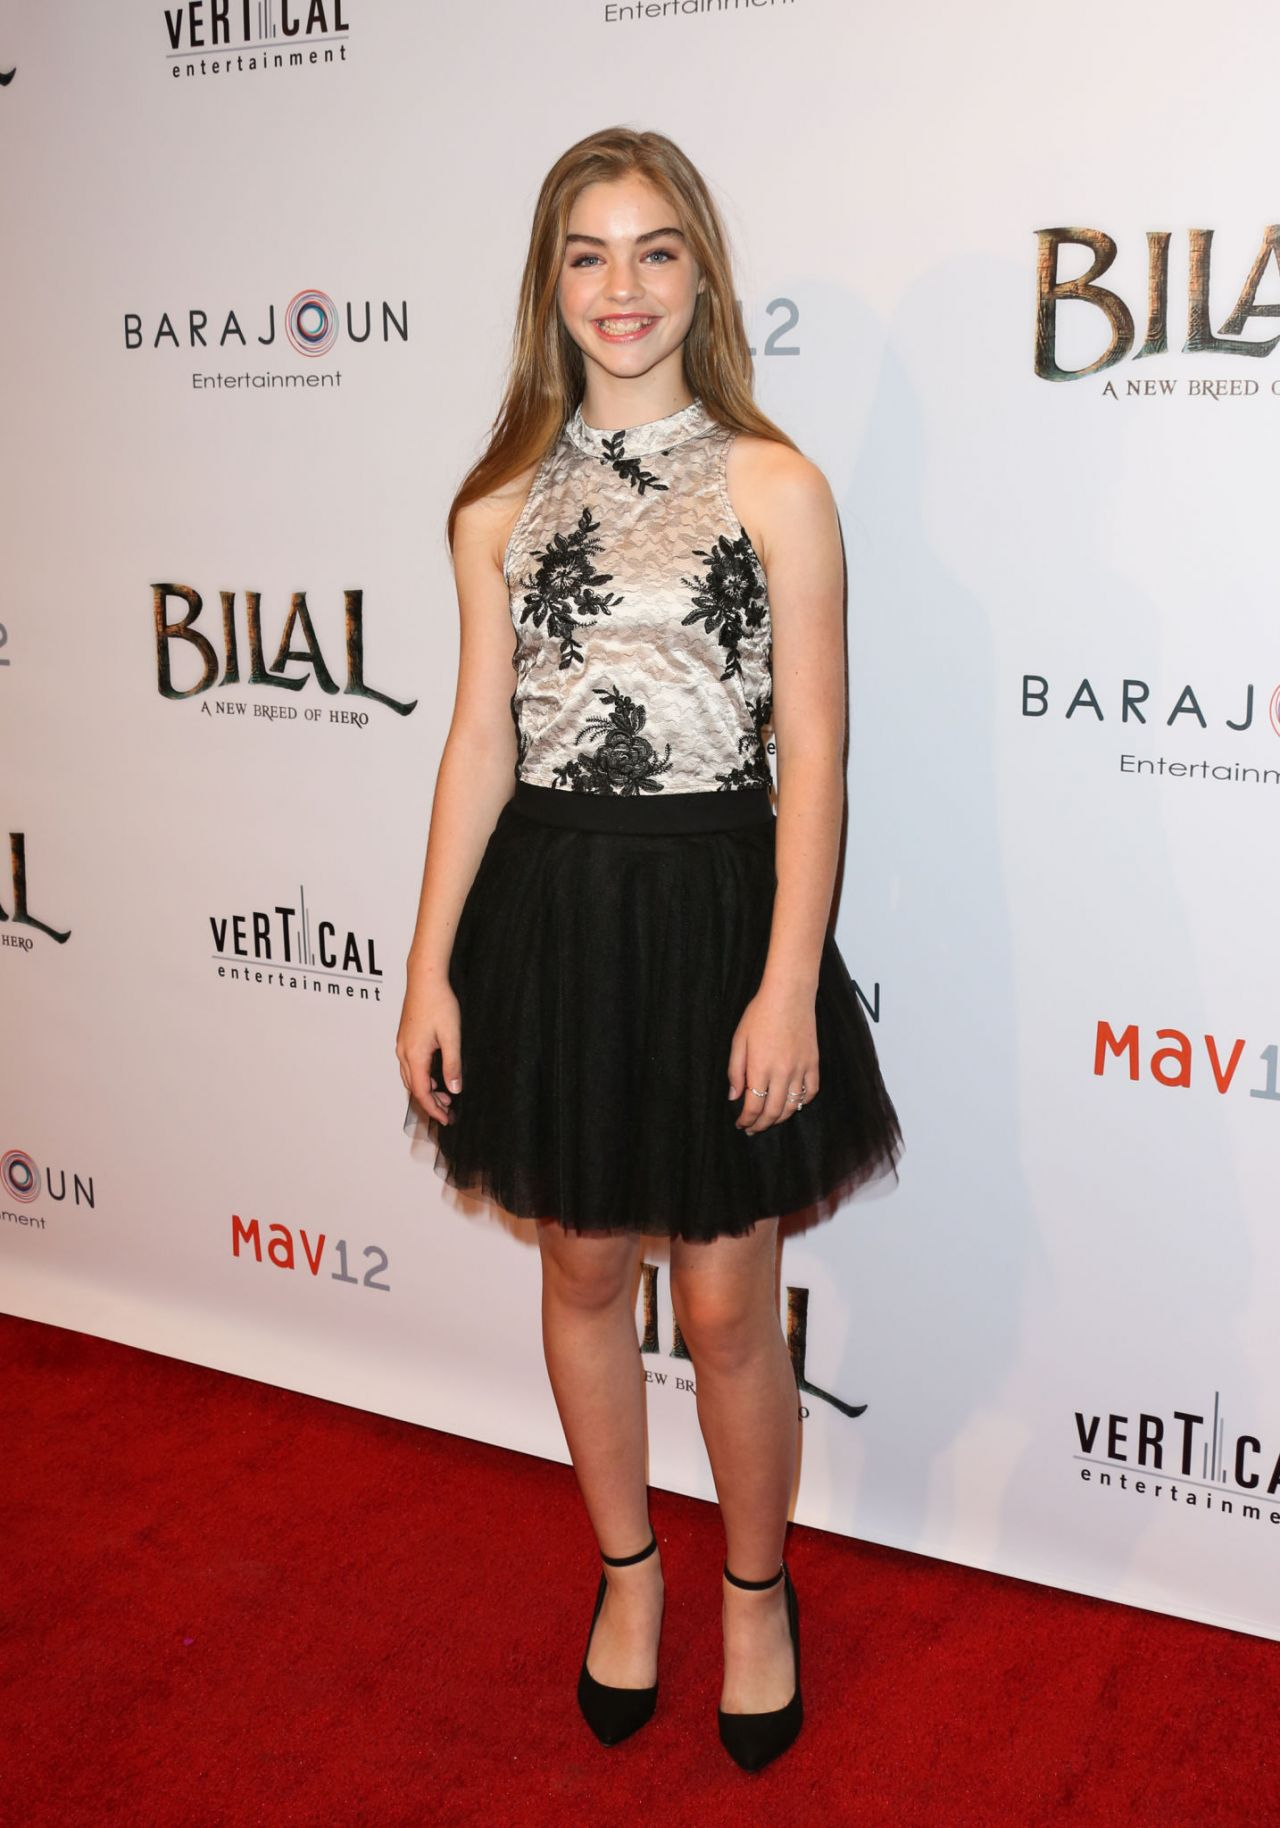 Jade Weber Bilal A New Breed Of Hero Premiere In Los Angeles